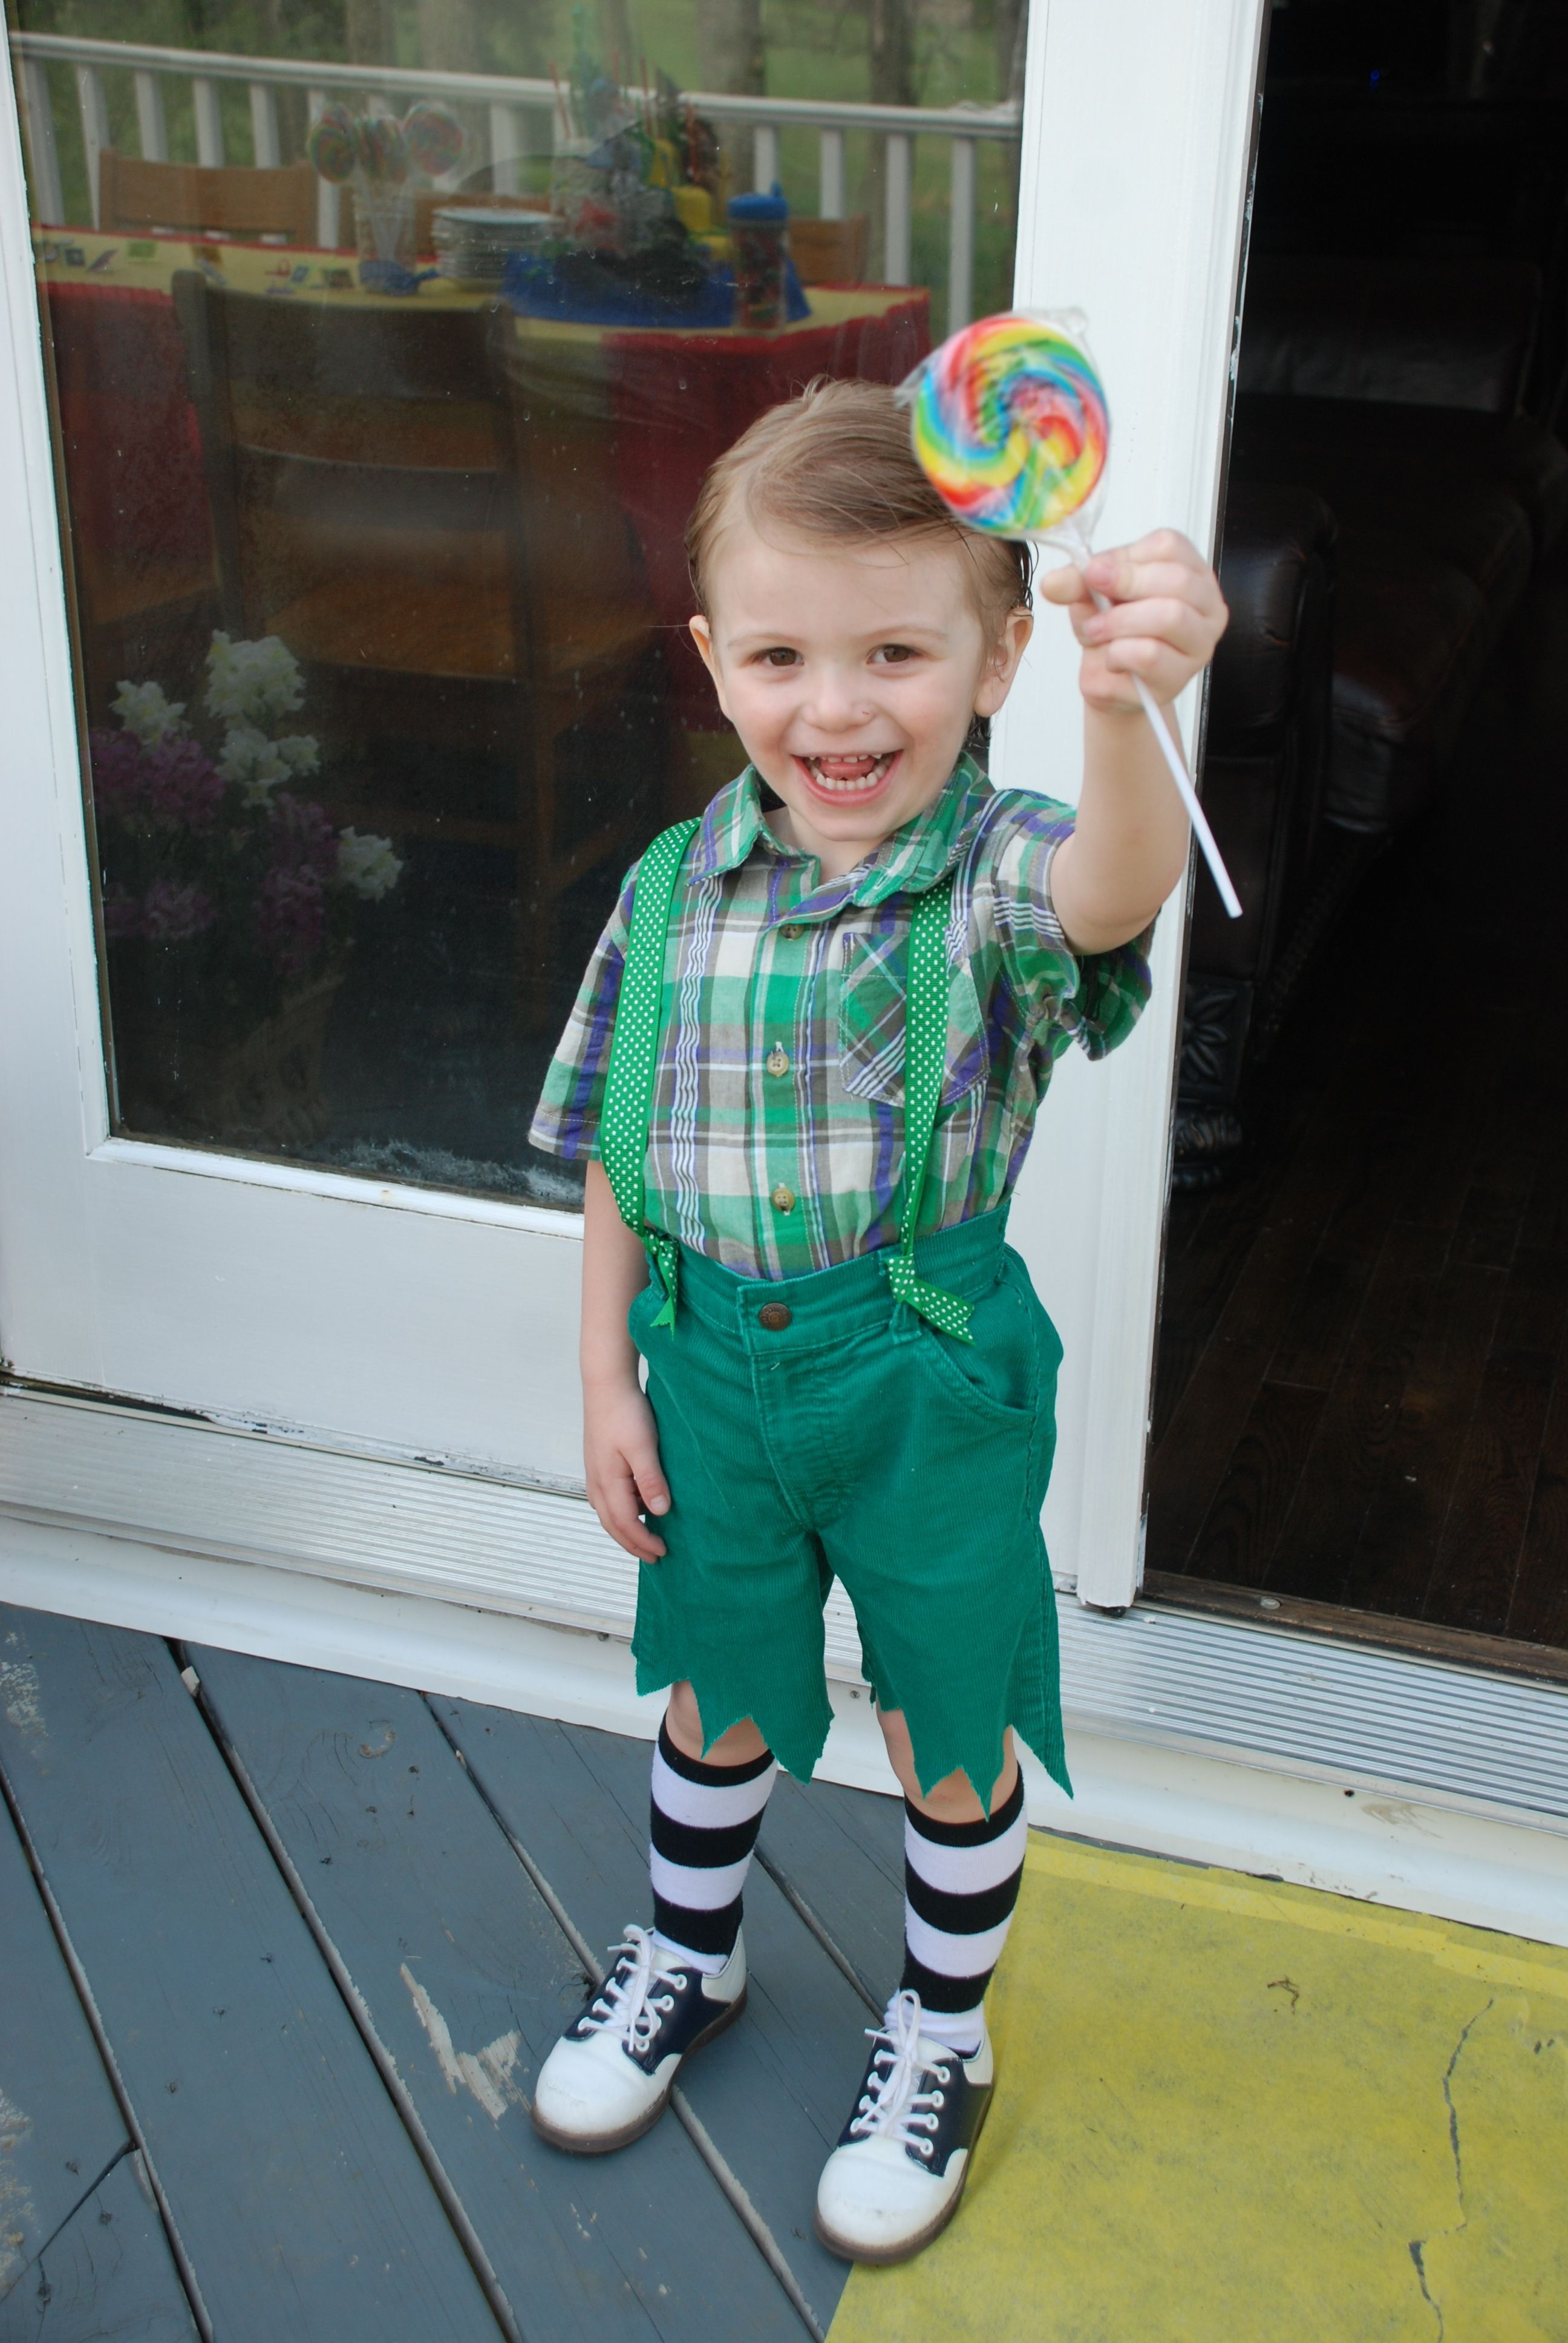 Wizard of Oz munchikin Costume Patterns | The Wizard of Oz costume ...